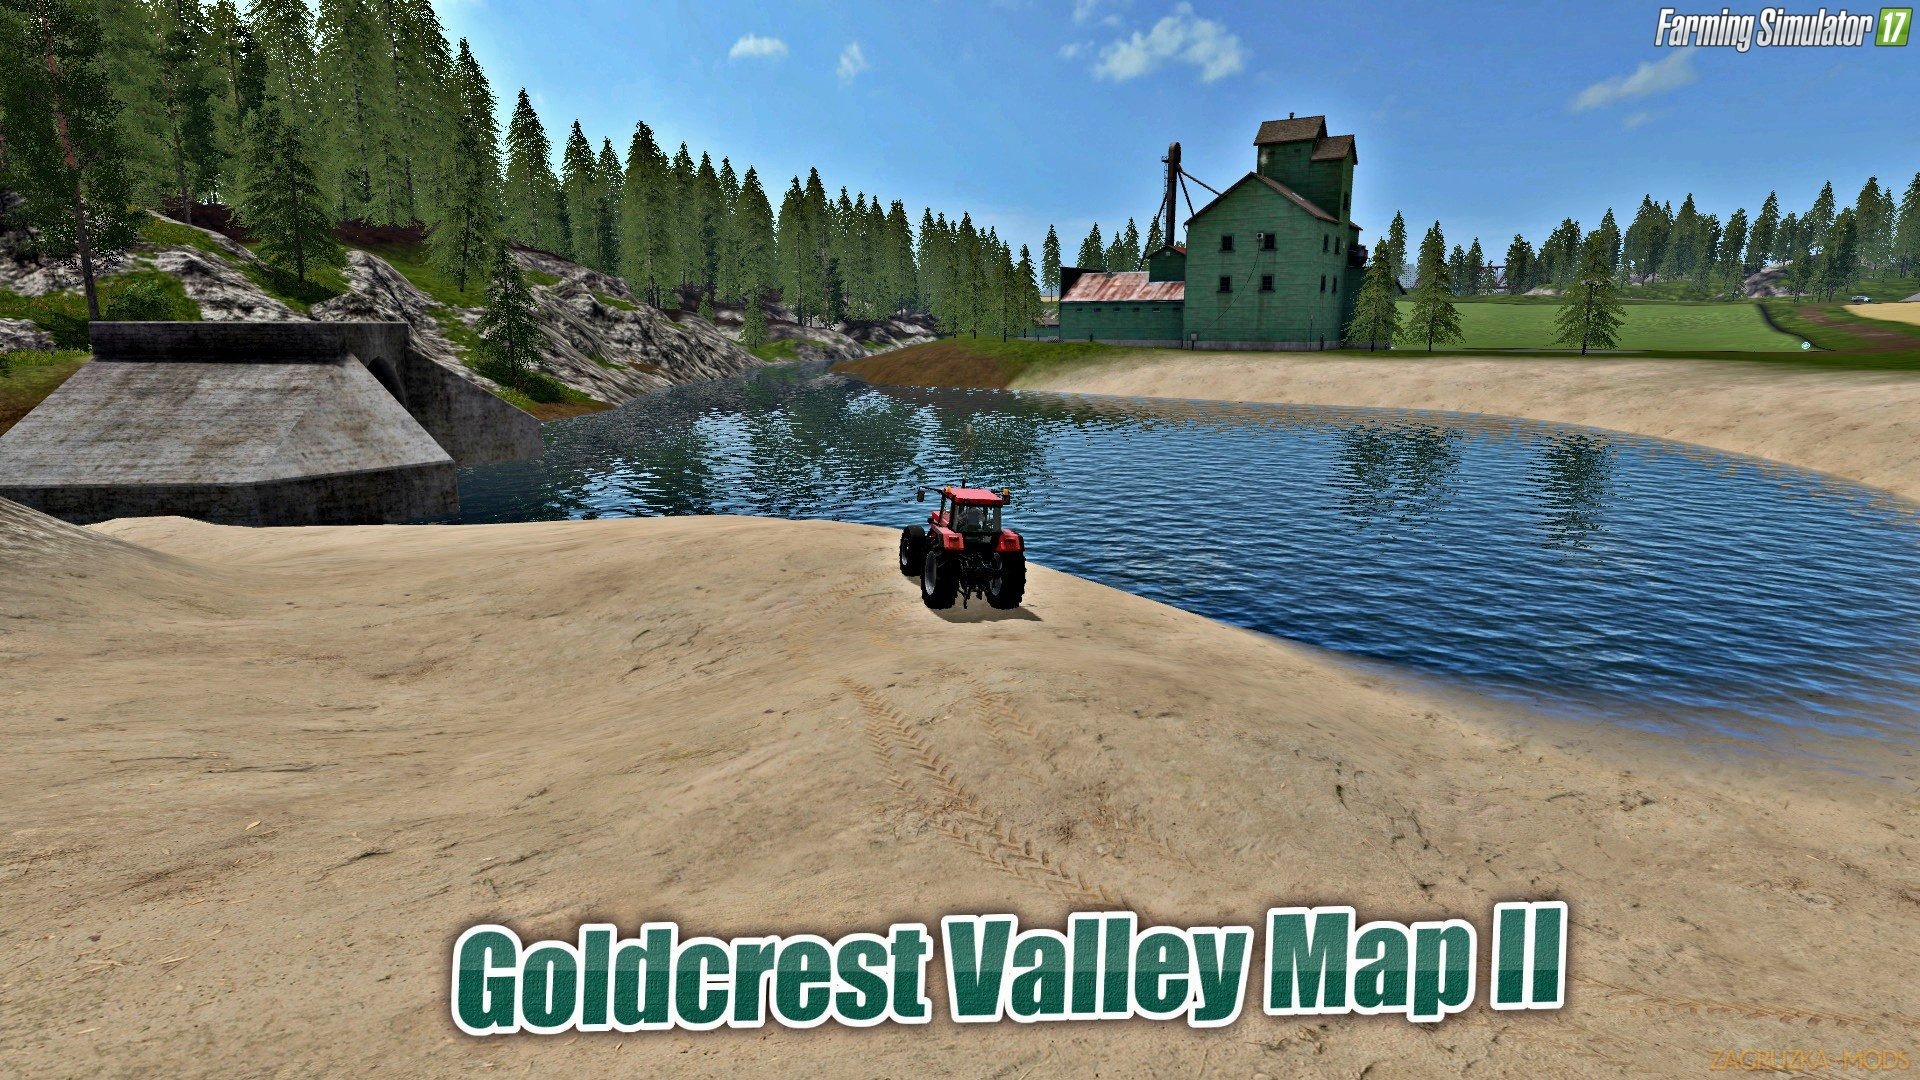 Goldcrest Valley Map II v4.0 for FS 17